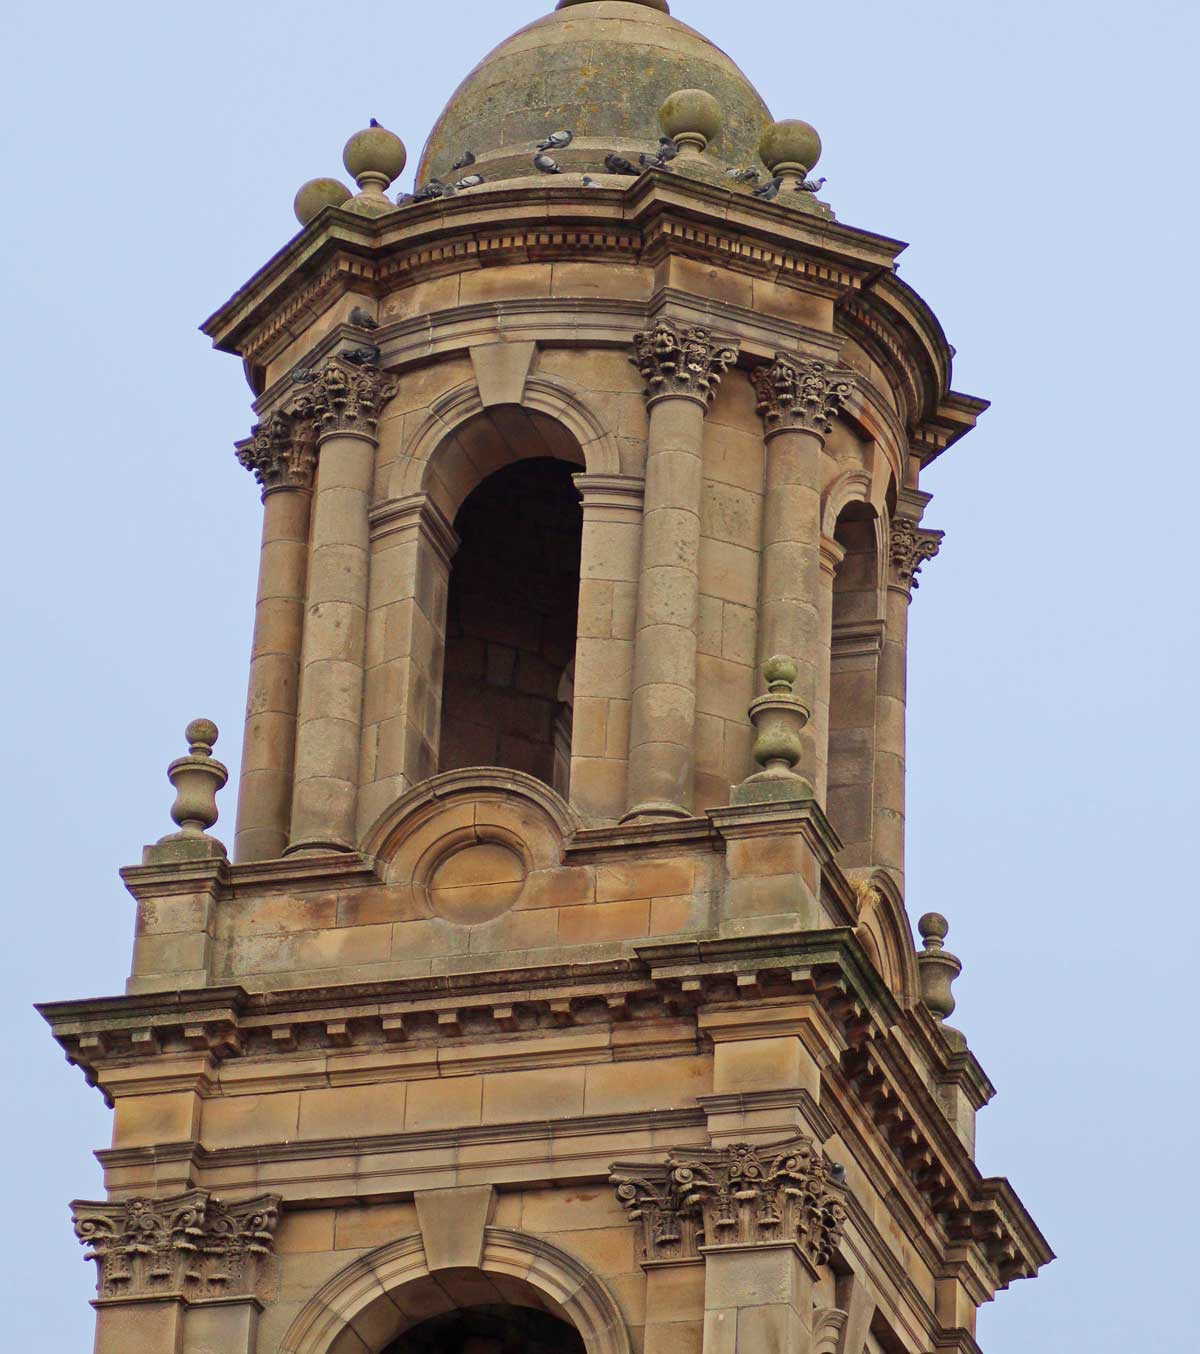 Tower at Tain Parish Church, MAAC Studio conservation architects